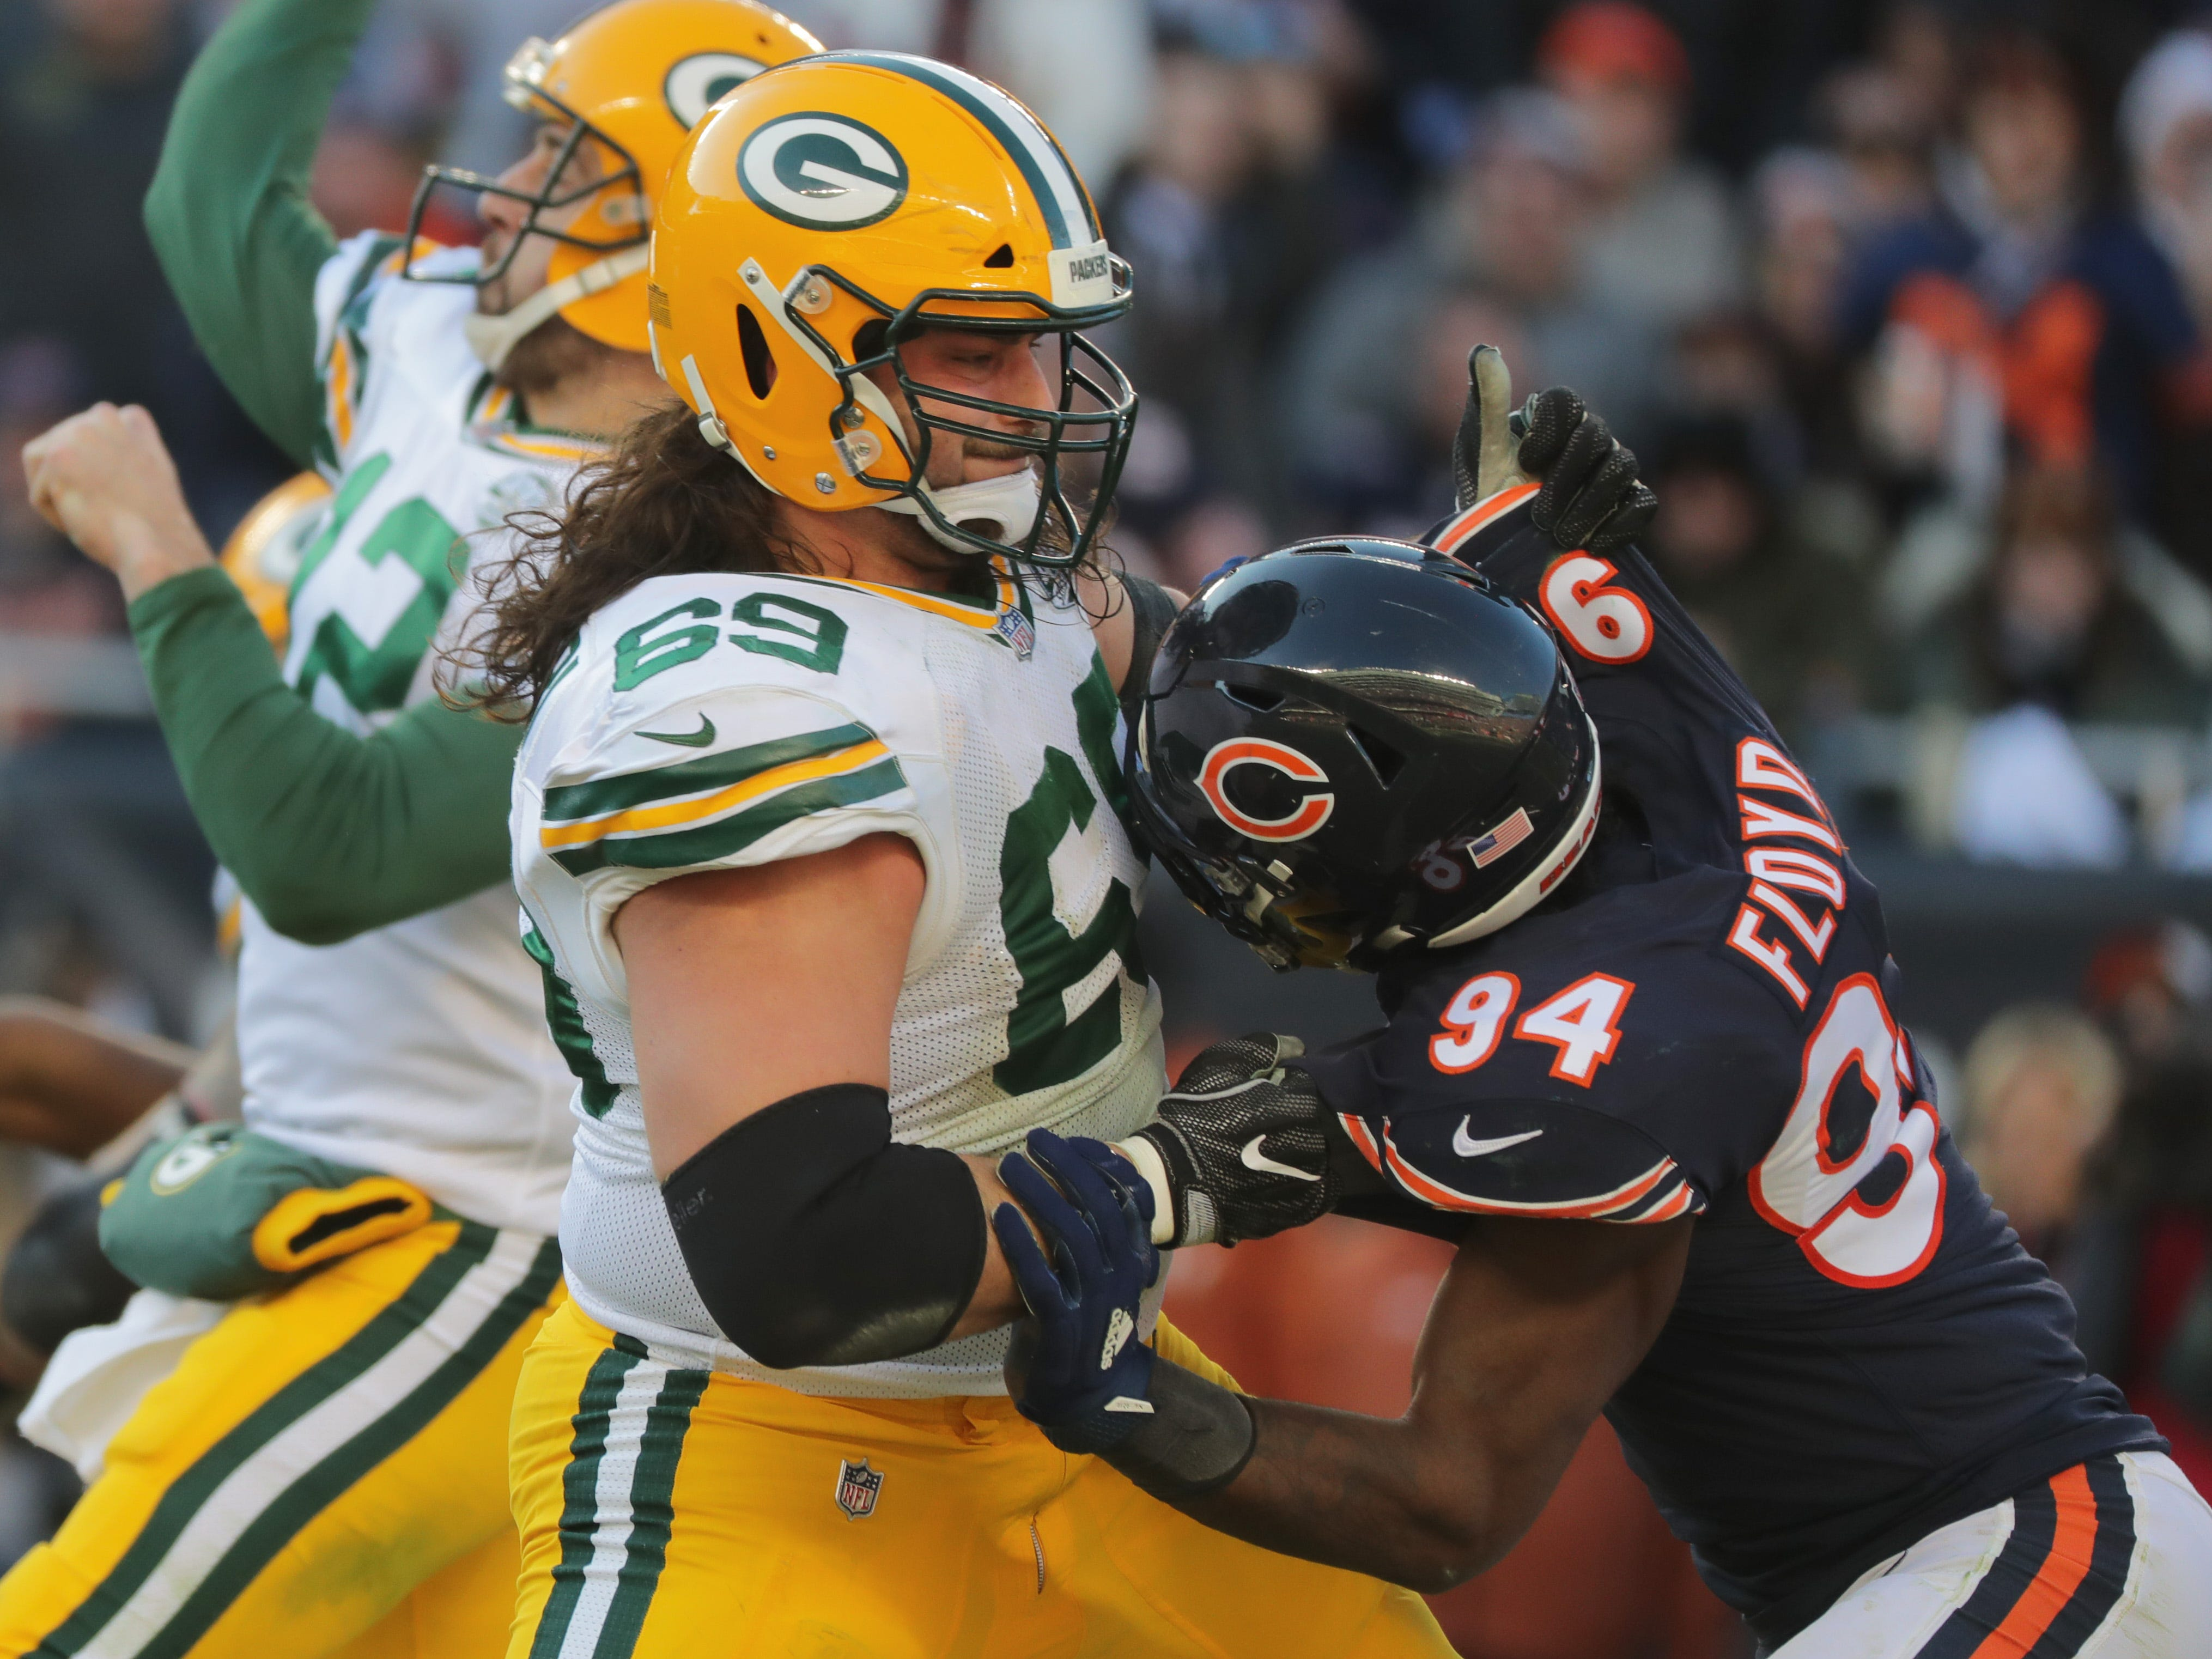 Green Bay Packers offensive tackle David Bakhtiari (69) blocks Chicago Bears outside linebacker Leonard Floyd (94) during the fourth quarter of their game Sunday, December 25, 2018 at Soldier Field in Chicago, Ill. The Chicago Bears beat the Green Bay Packers 24-17.  MARK HOFFMAN/MILWAUKEE JOURNAL SENTINEL